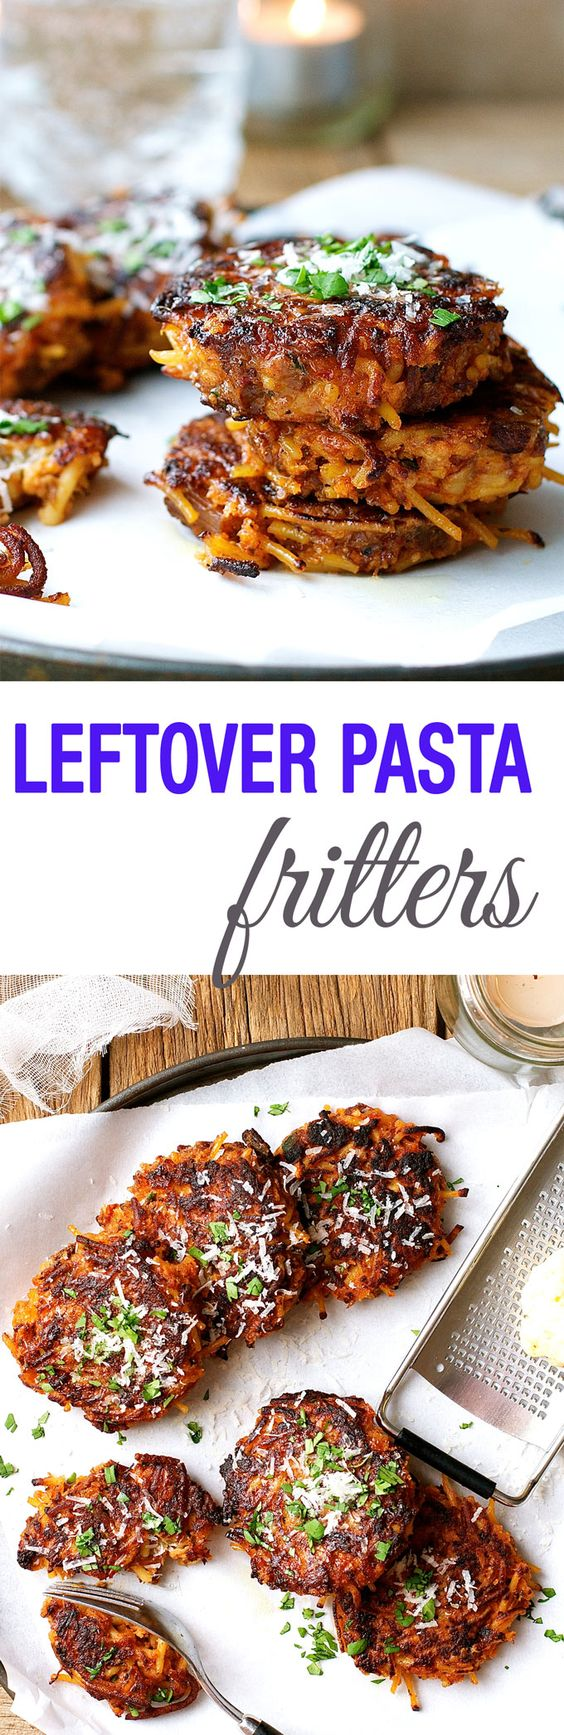 Makeover Leftover Pasta - turn them into these incredible fritters with just eggs, breadcrumbs and a bit of cheese! Can be made with any leftover pasta.